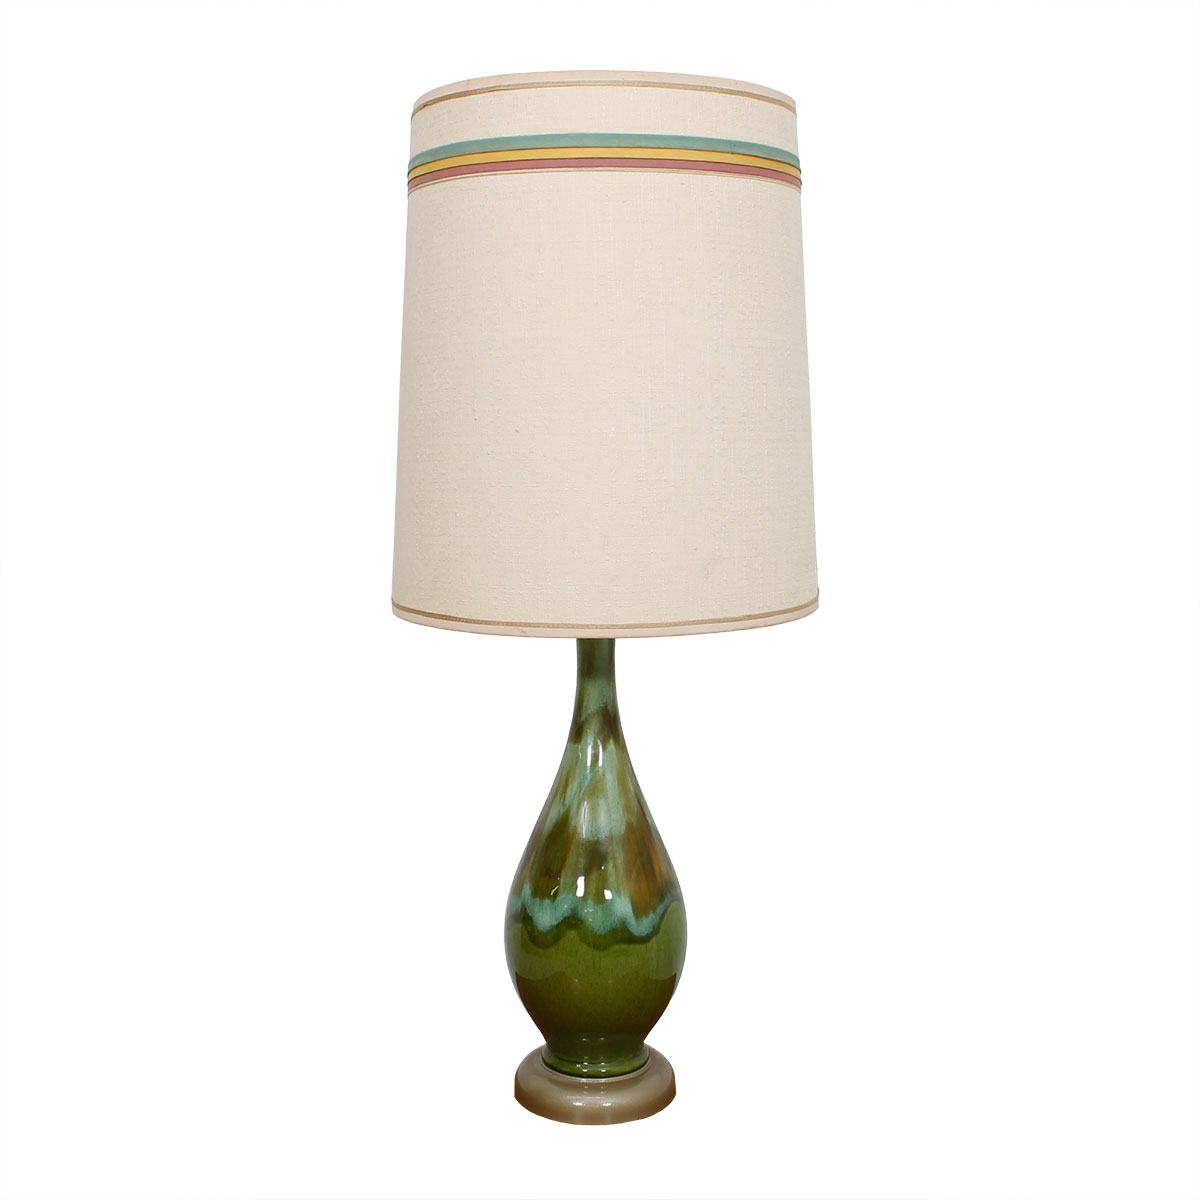 MCM Ceramic Lamp with Blue & Green Glaze